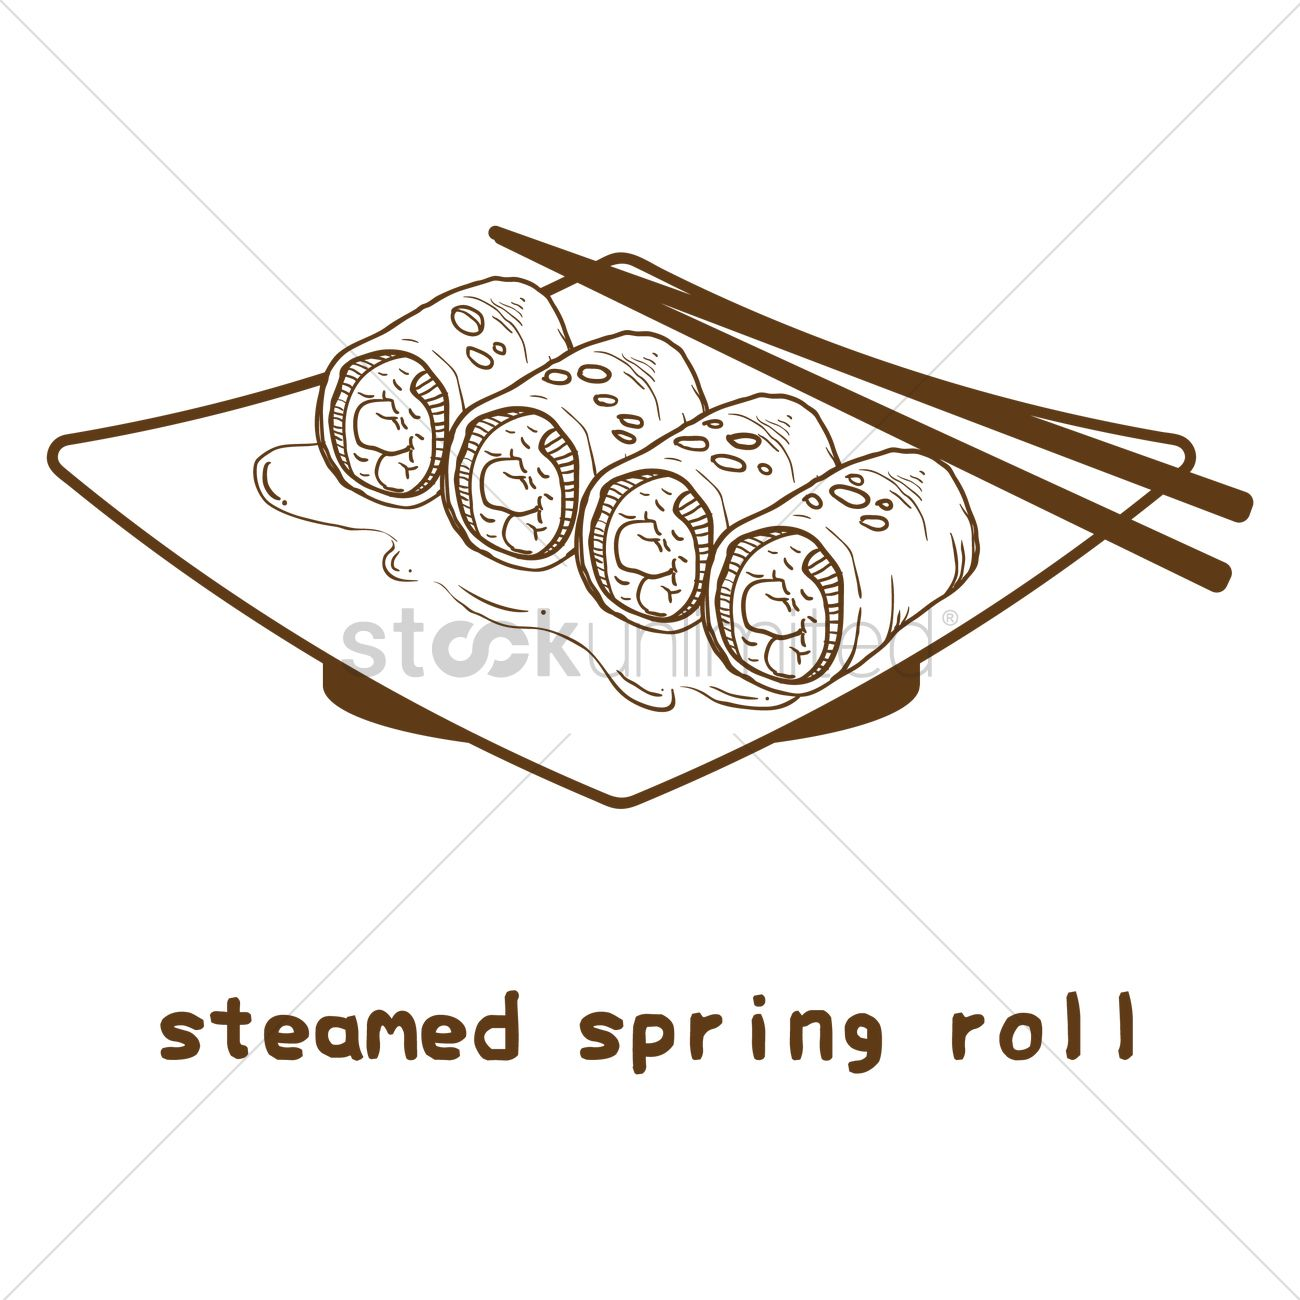 1300x1300 Steamed Spring Roll Vector Image